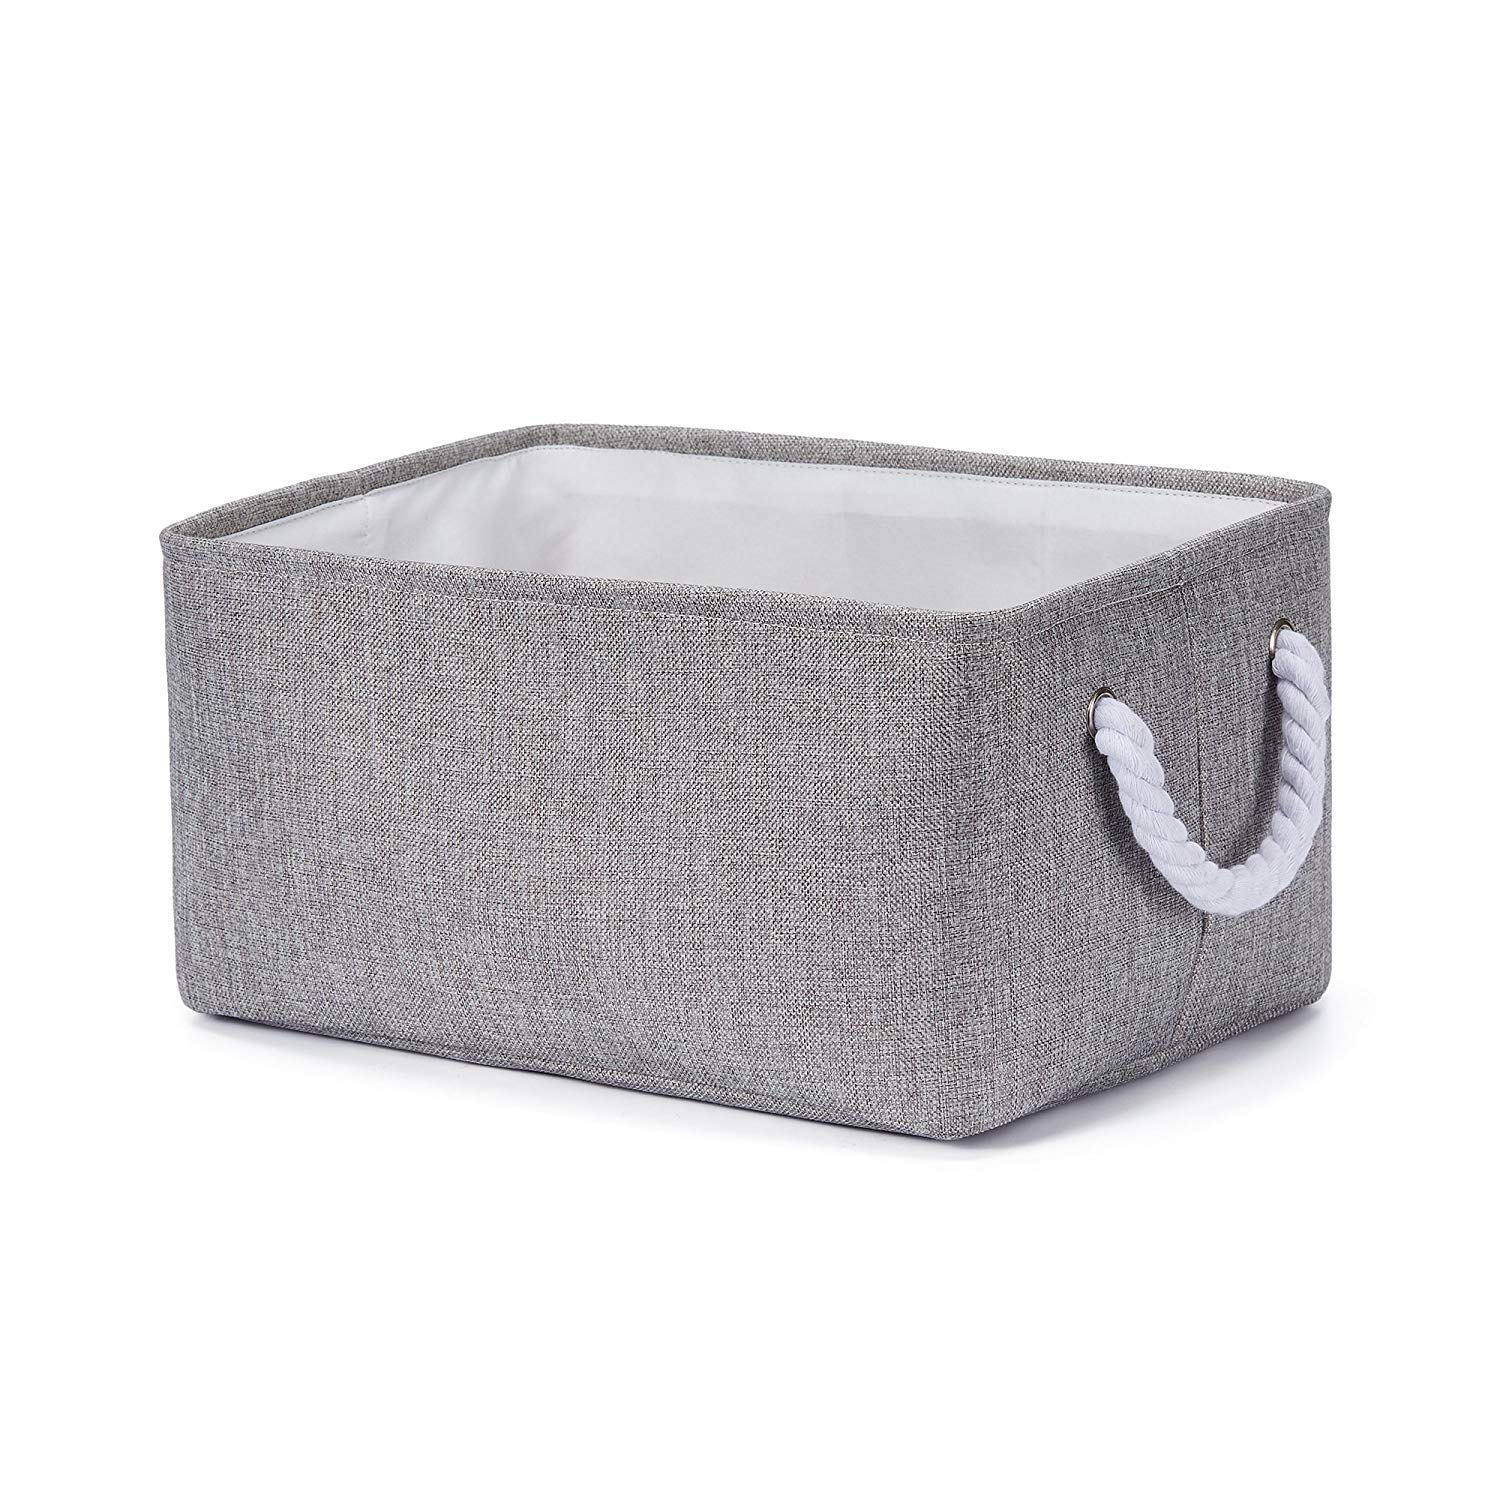 Small Every Deco Rectangular Metal Frame Storage Bin Laundry Gift Clothes Toys Basket with Rope Handles Toys Children Kids Boys Girls Nursery - Brown Crosshatch 11.8 x 7.8 x 5